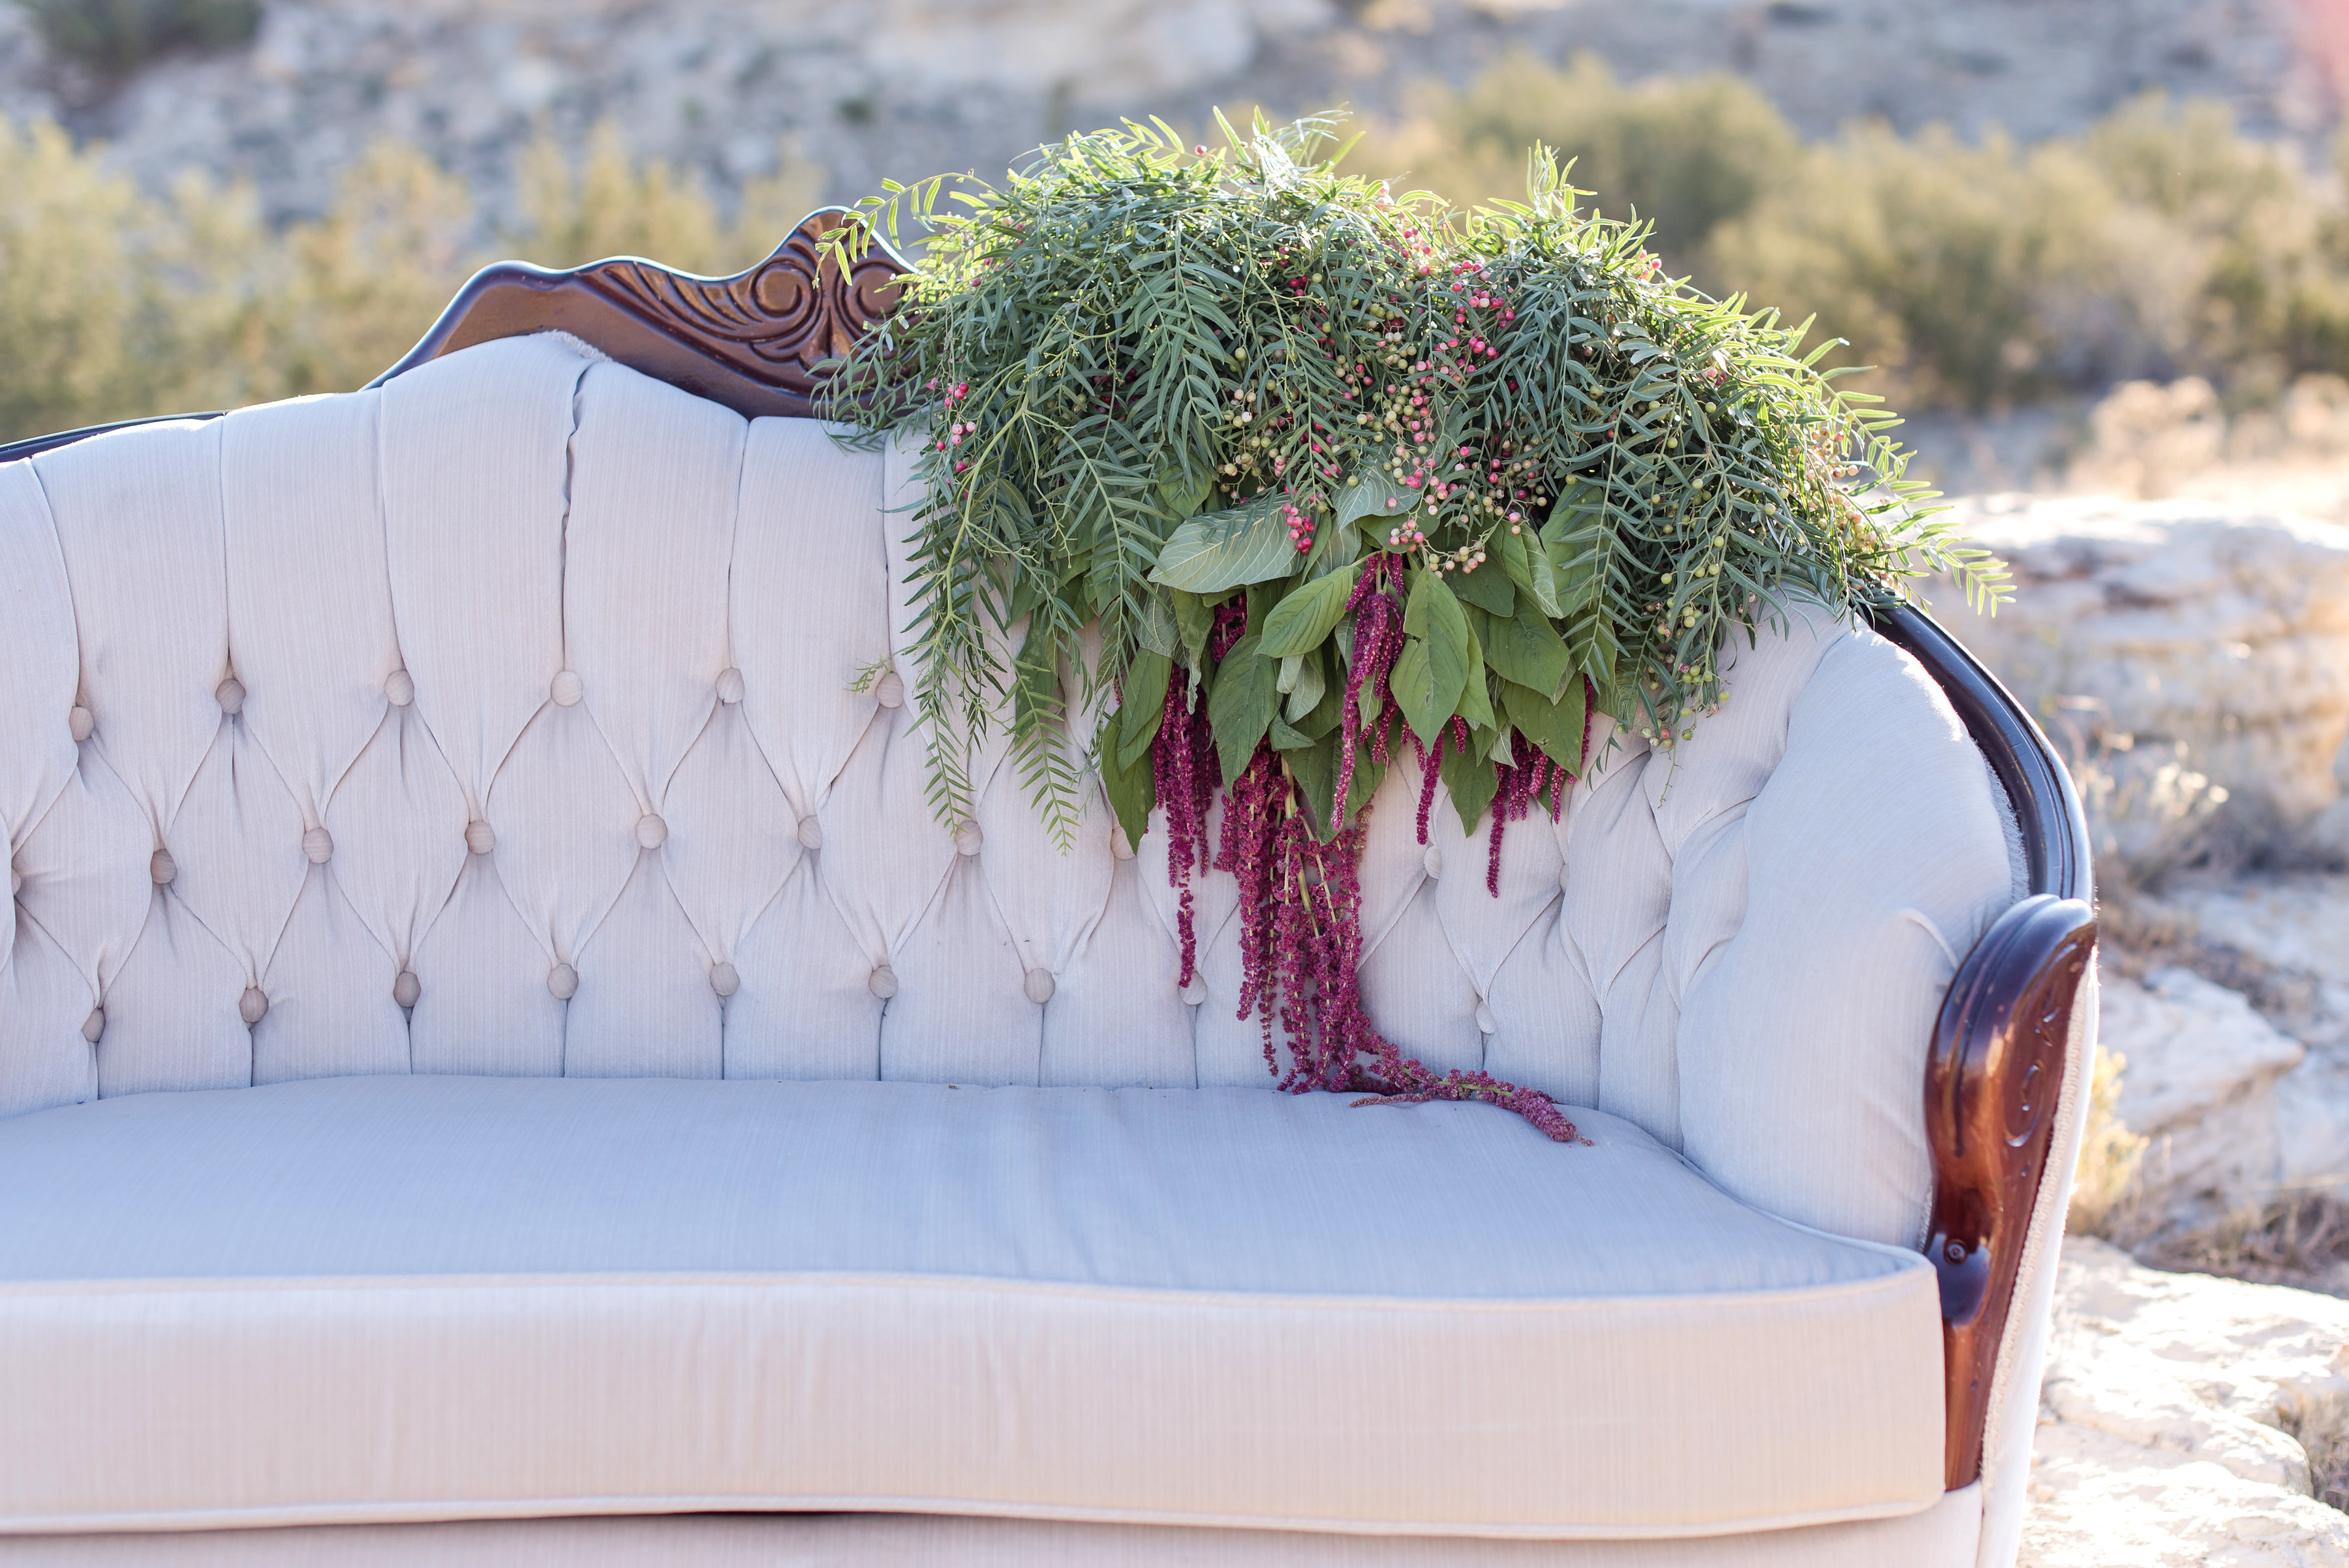 wedding planning photography styled shoot natural light outdoor elopement engagement New Mexico Albuquerque mountains Perfect Wedding Guide furniture vintage greenery home decor rental loves eat love marriage